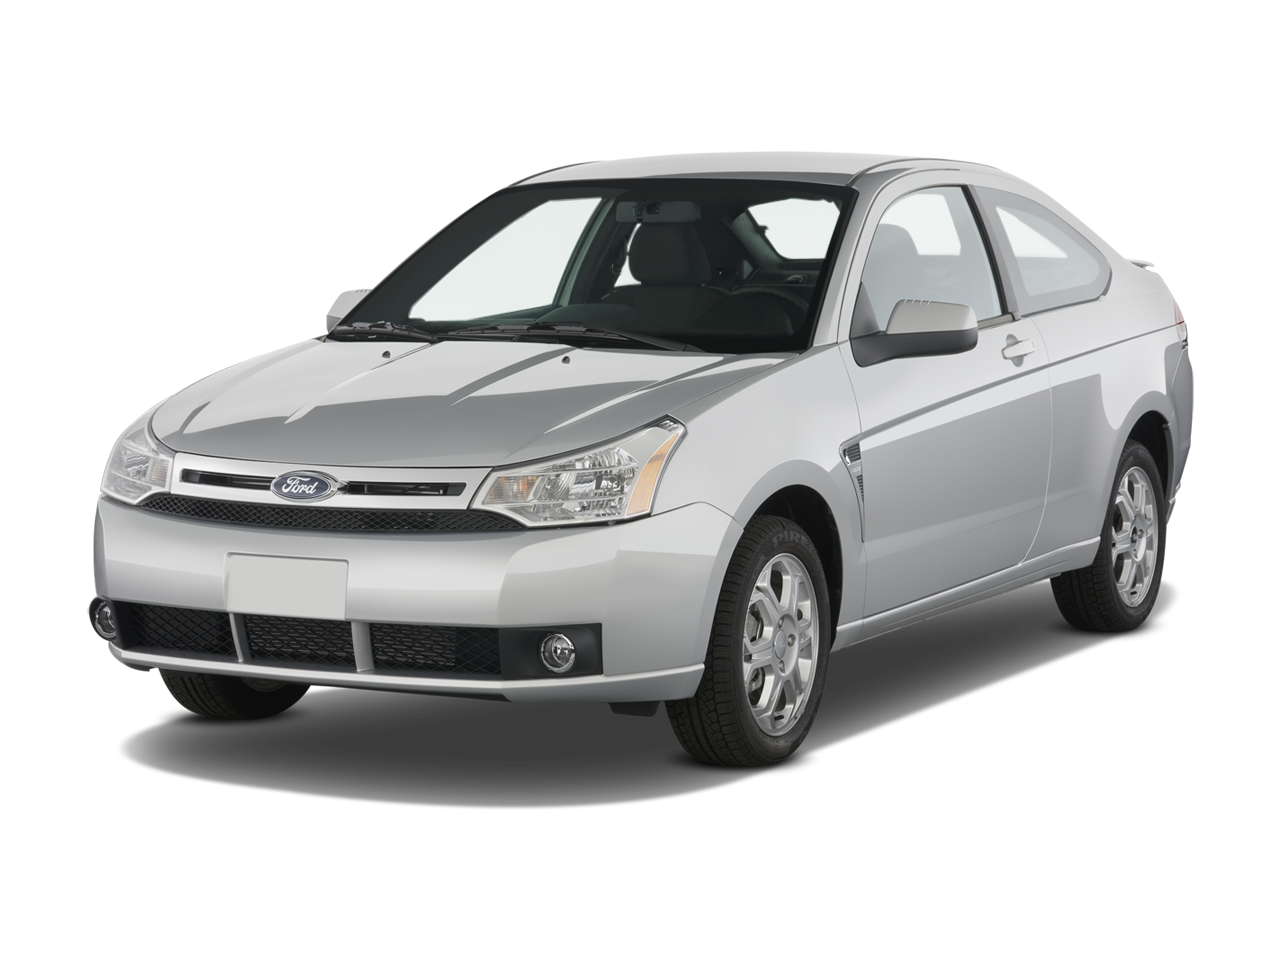 2008 ford focus latest car truck and suv reviews